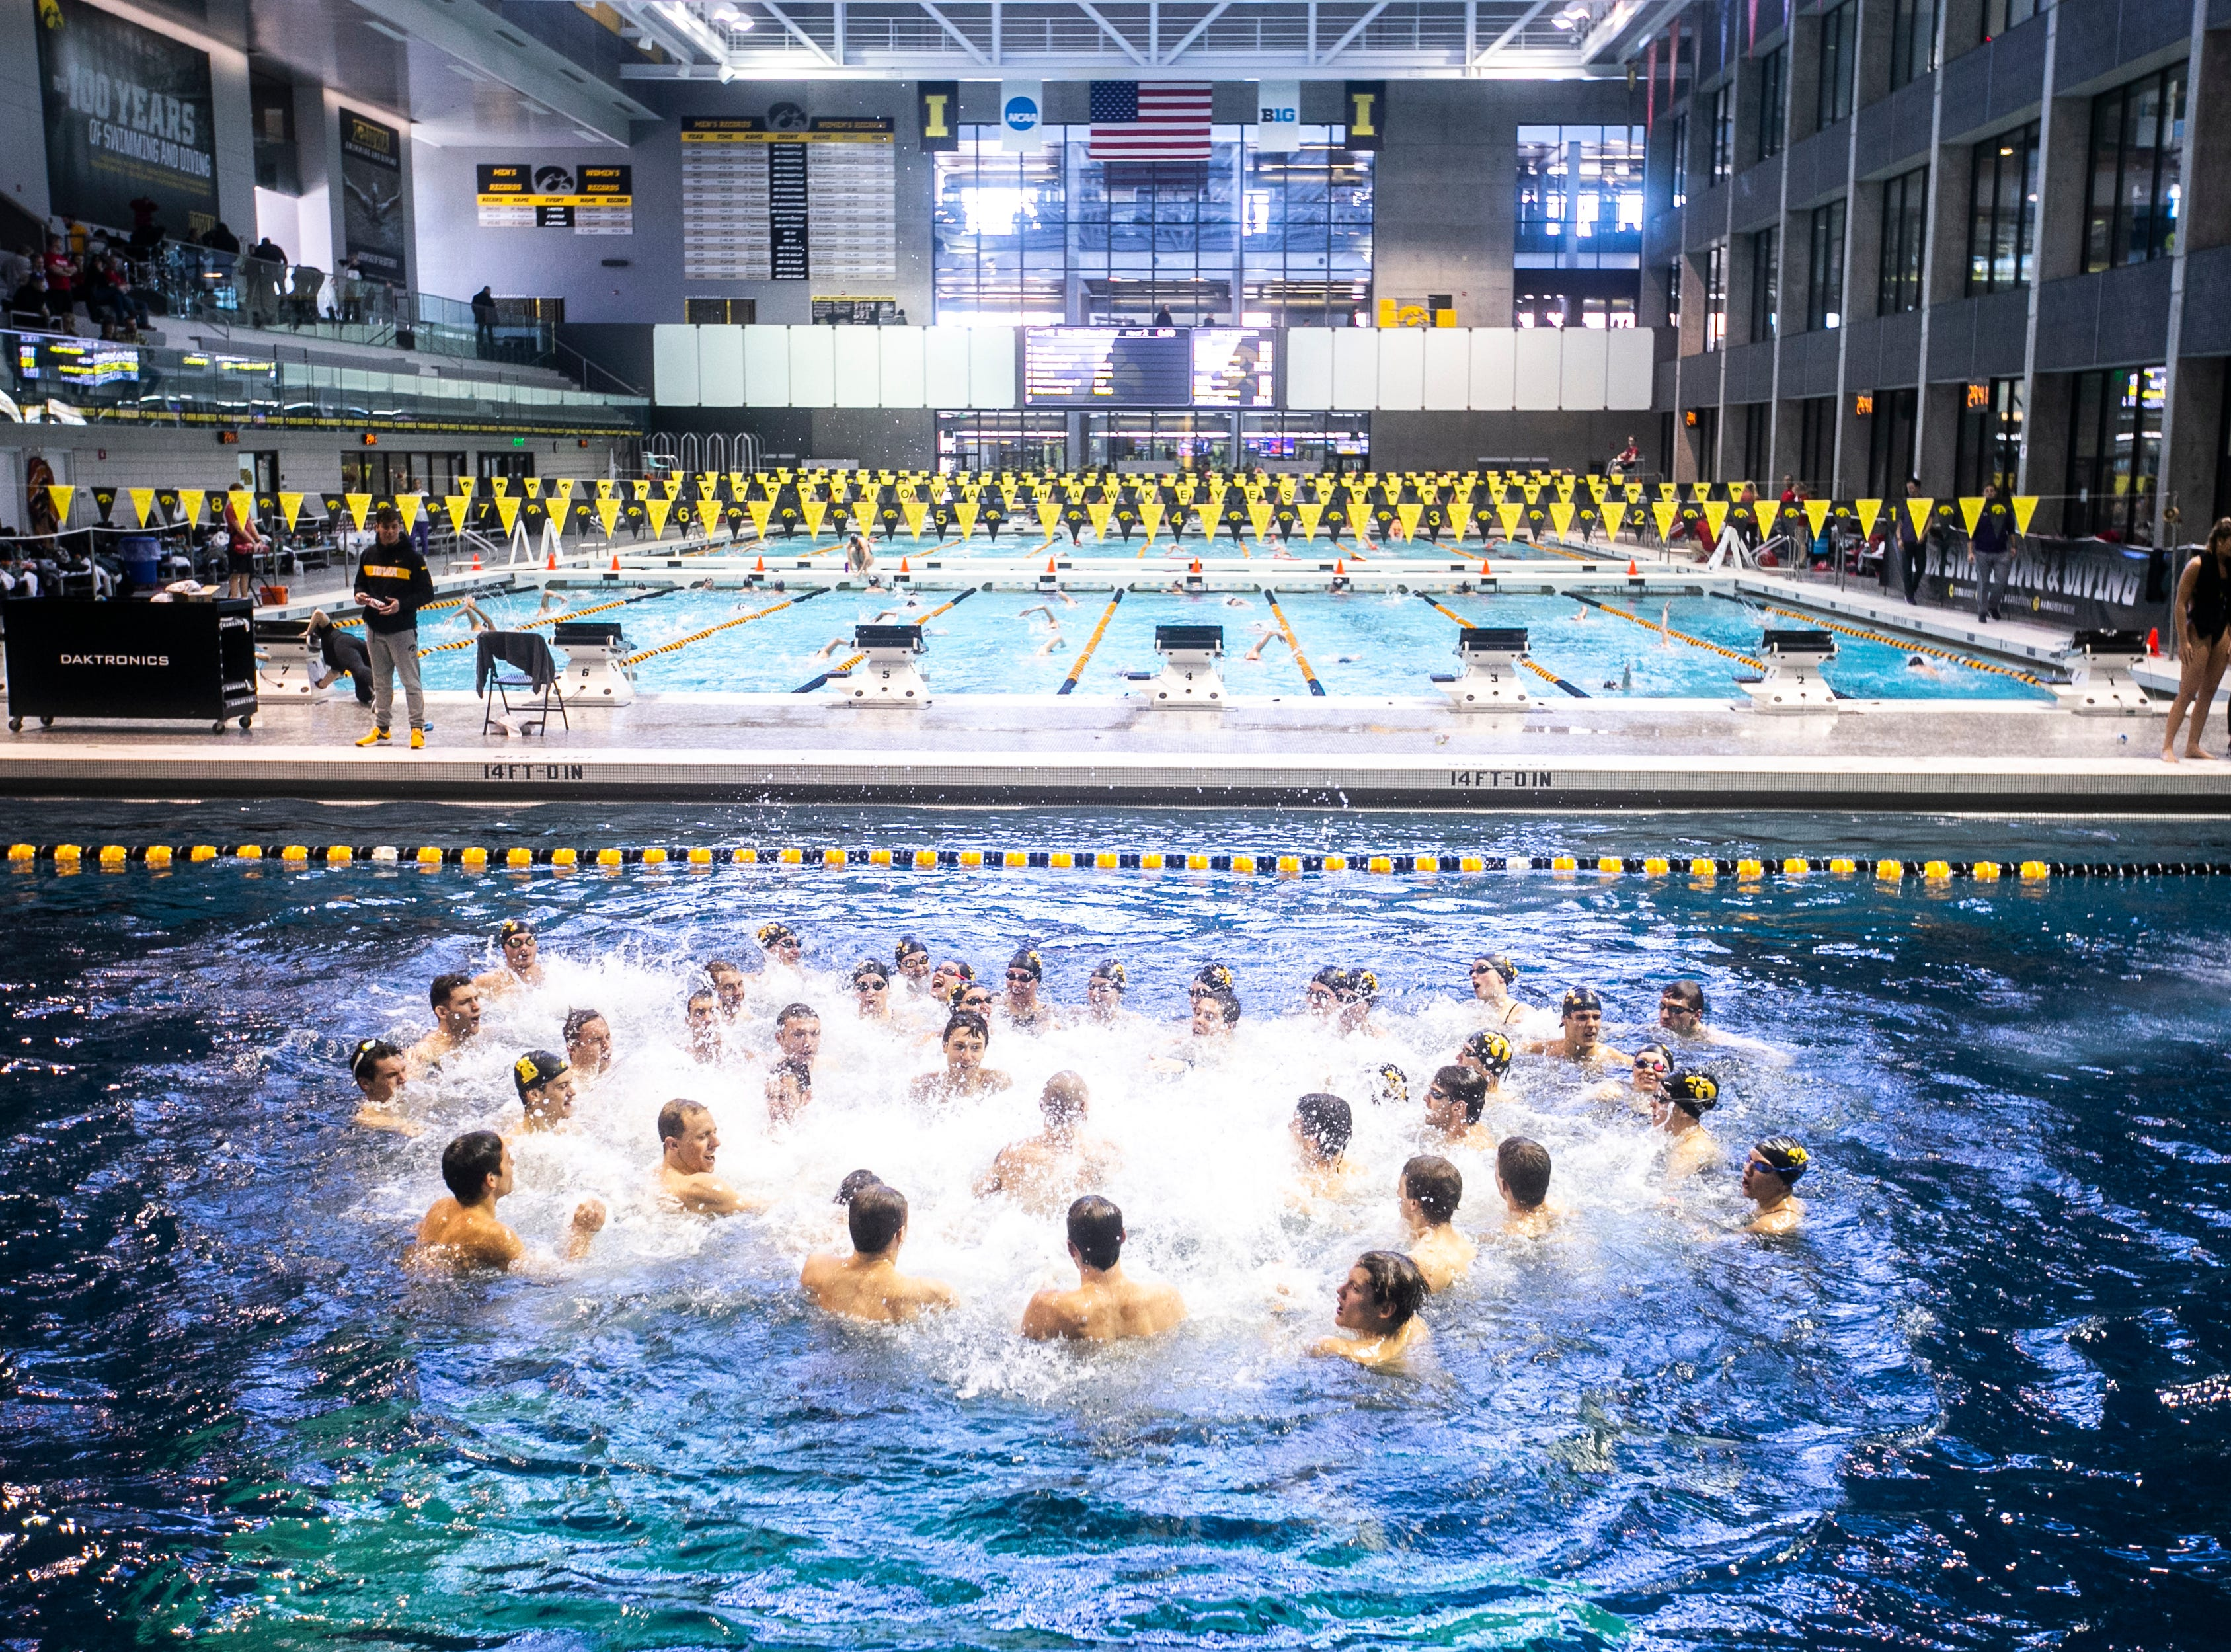 Iowa Hawkeyes celebrate in the diving pool after a NCAA Big Ten Conference swimming meet on Saturday, Jan. 19, 2019, at the Campus Recreation and Wellness Center in Iowa City, Iowa.